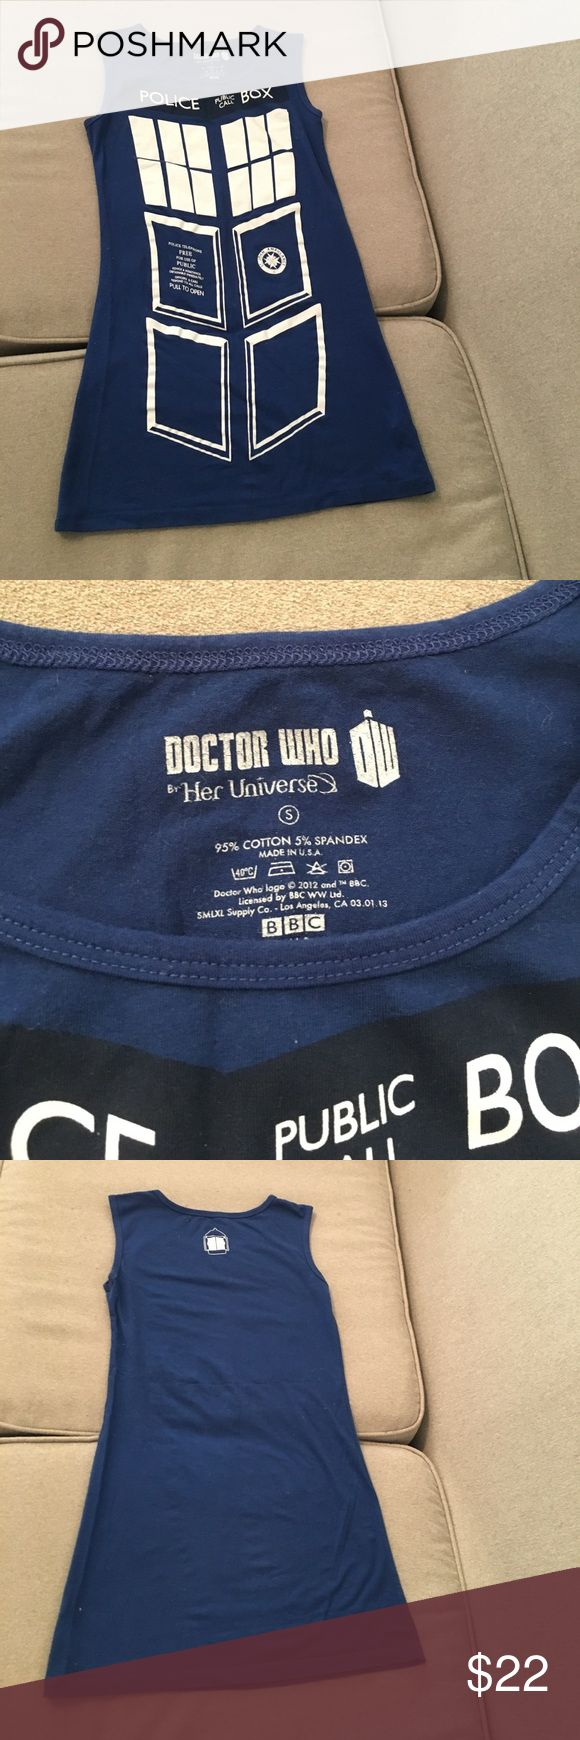 Doctor Who Police Box Dress Sz Small Doctor Who Police Box Dress Size Small. 95% Cotton 5% Spandex. Dresses Mini